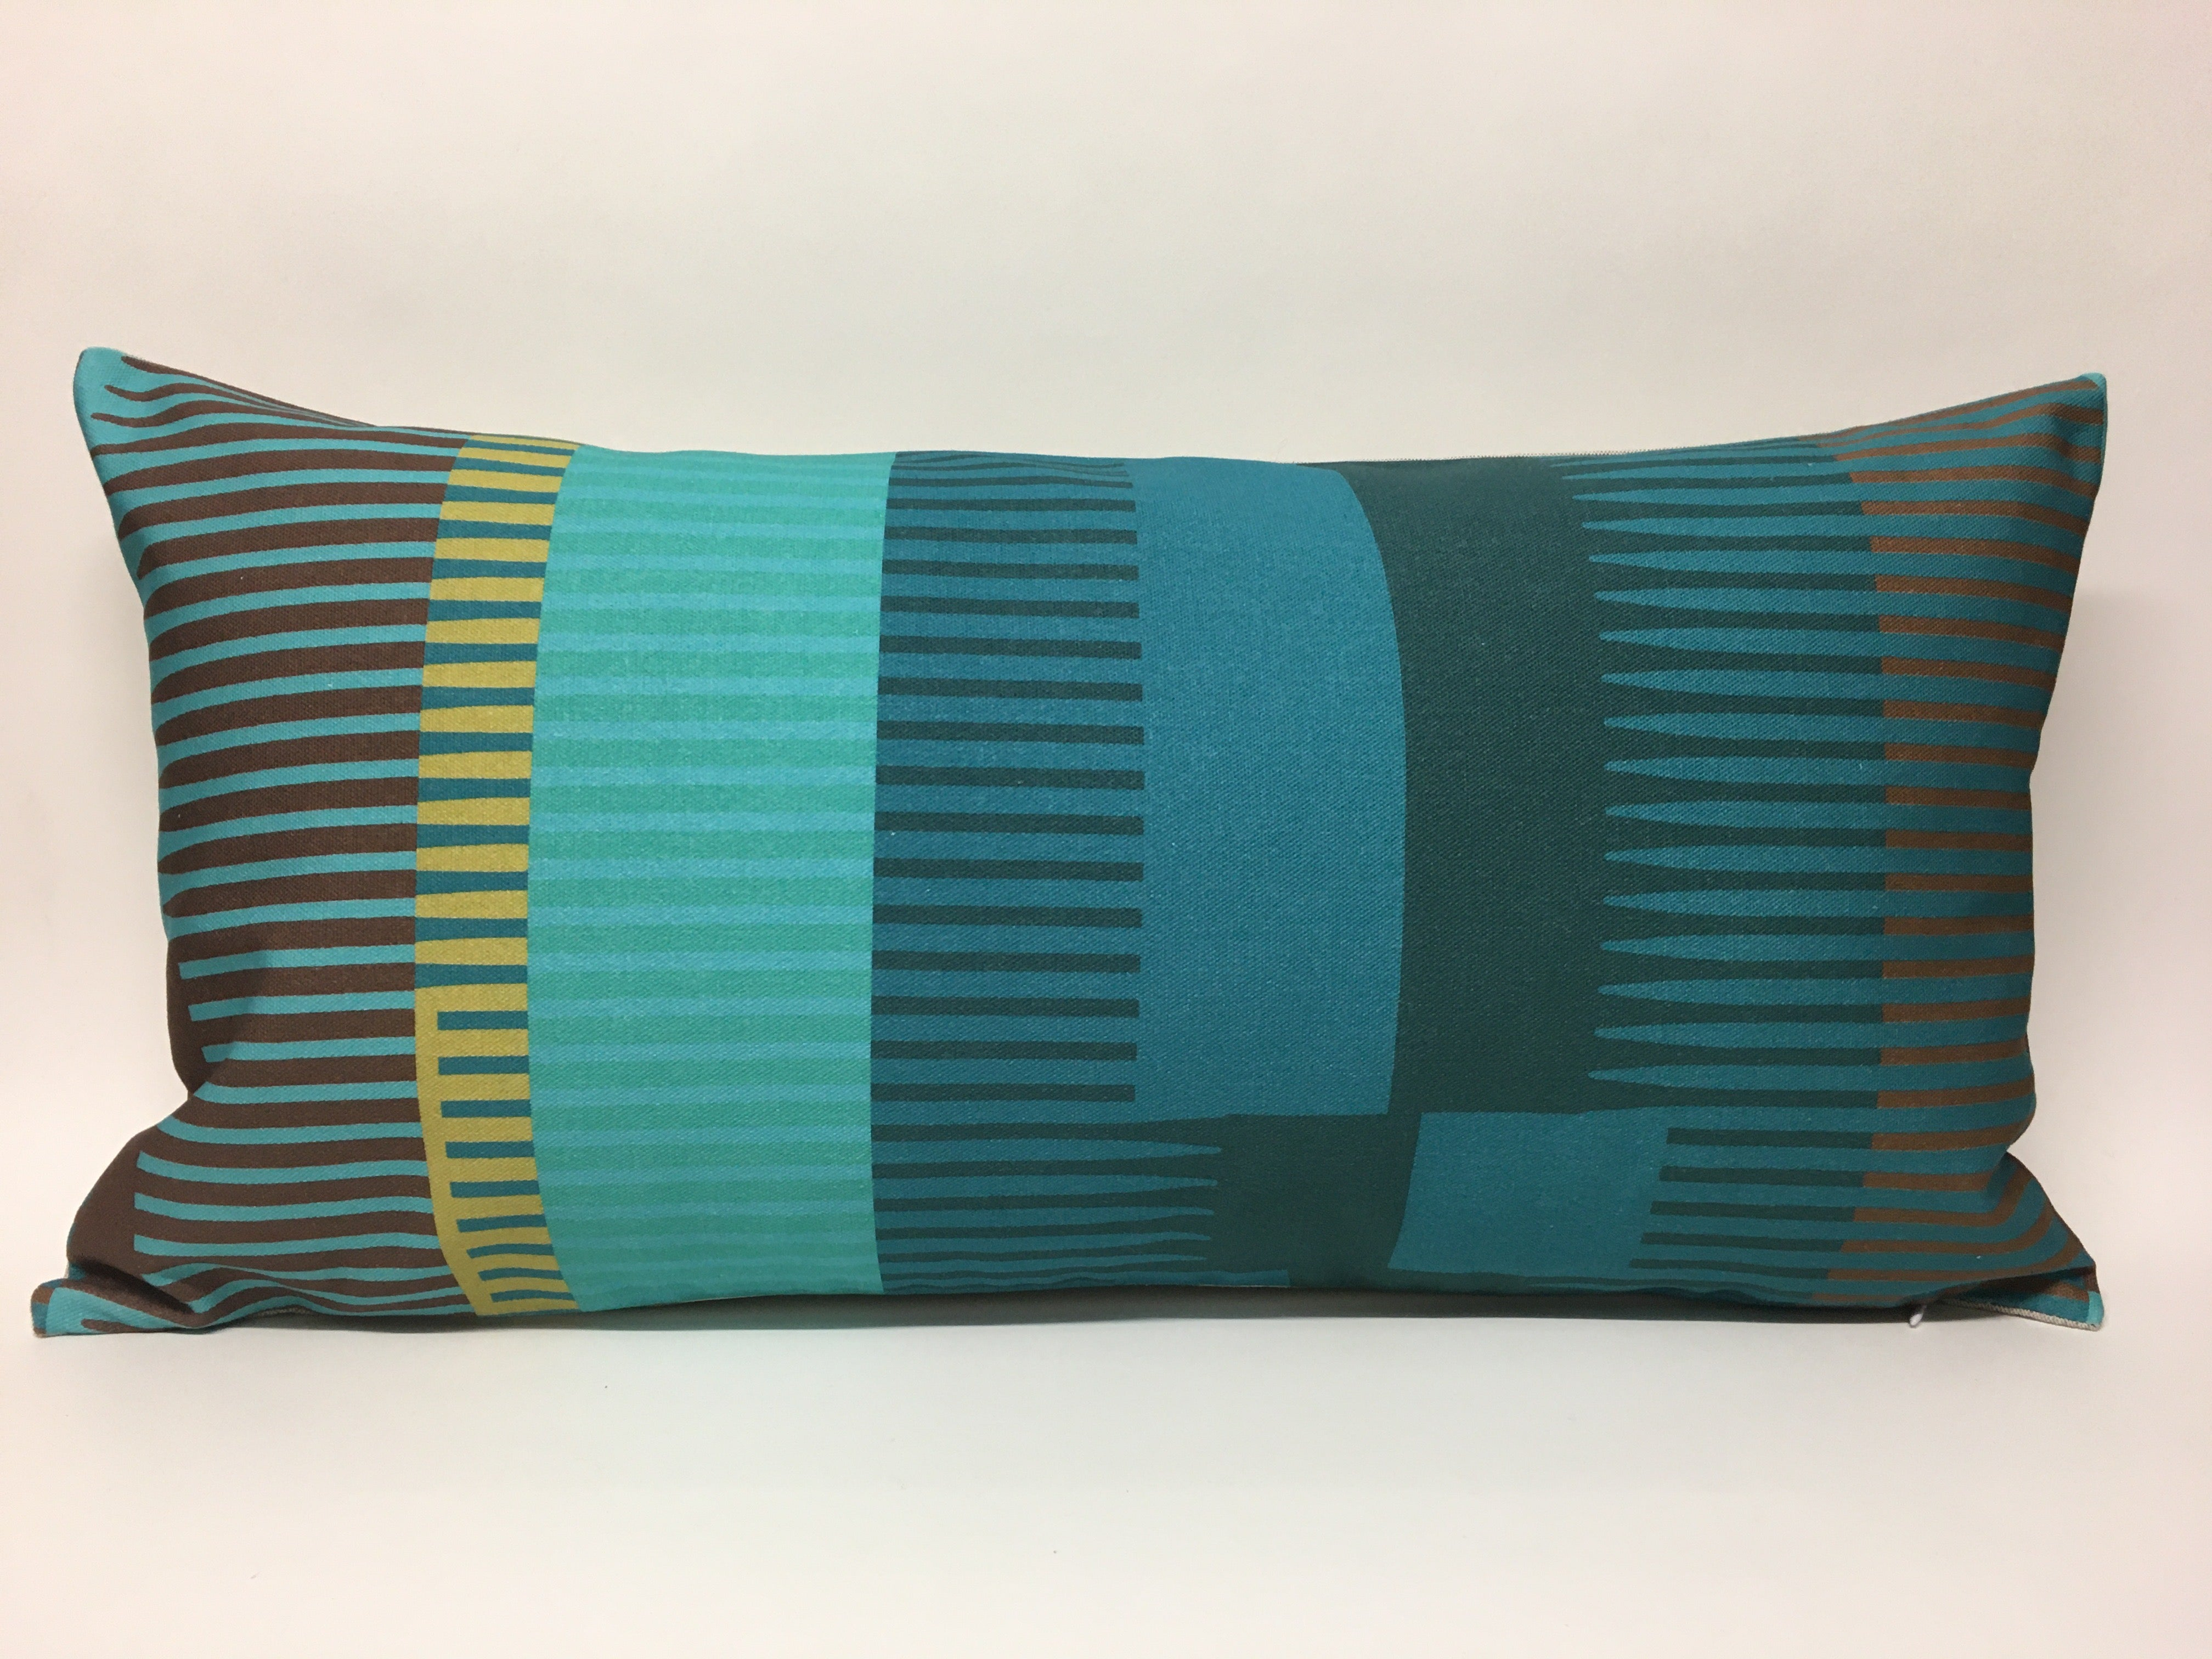 Combed Stripe Cushion - Teal, turquoise + olive